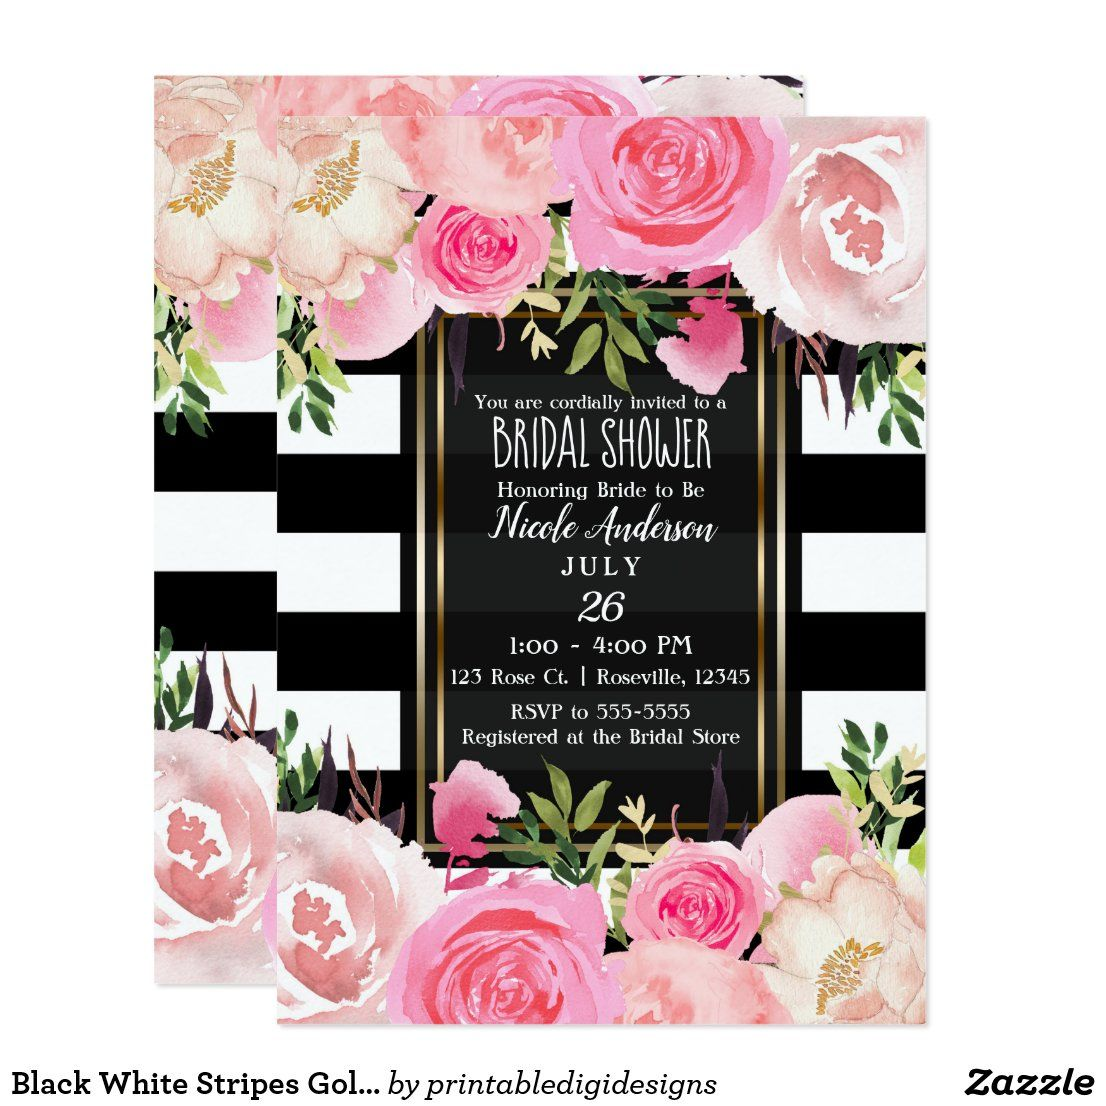 Black White Stripes Gold Pink Floral Bridal Shower